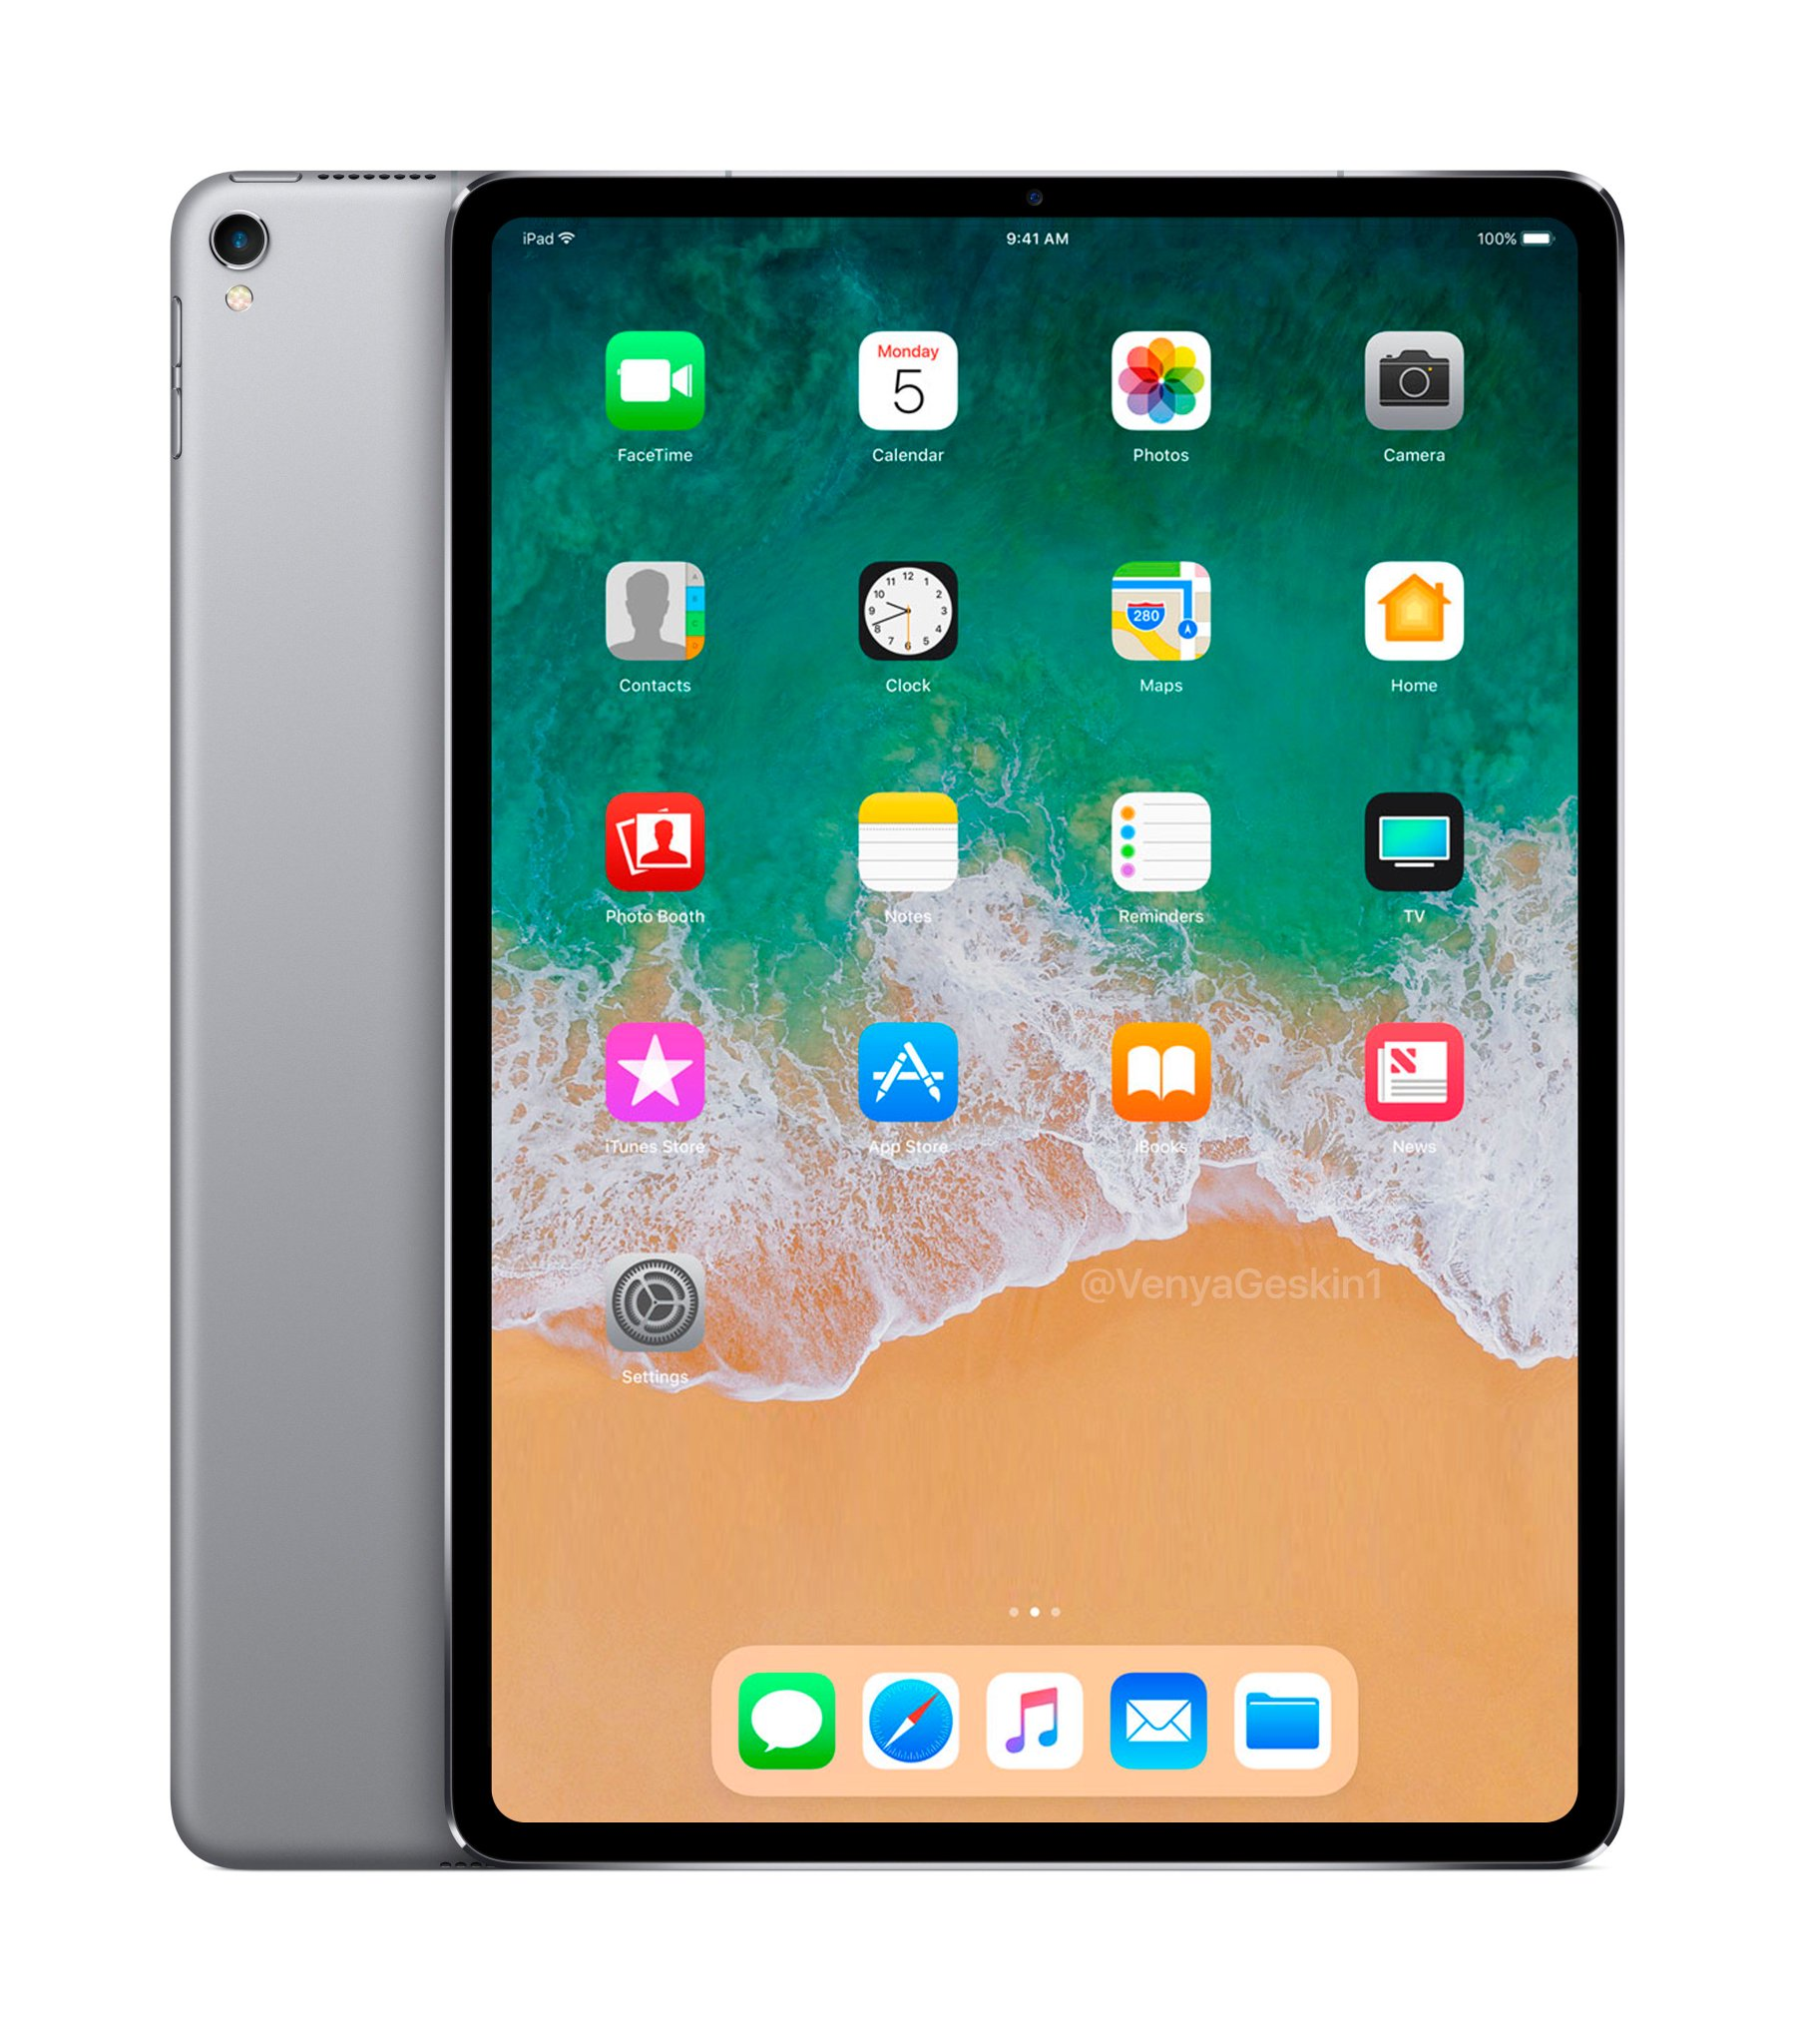 2018 iPad Pro with Face ID | Concept Render https://t.co/TTyMRXPMv1